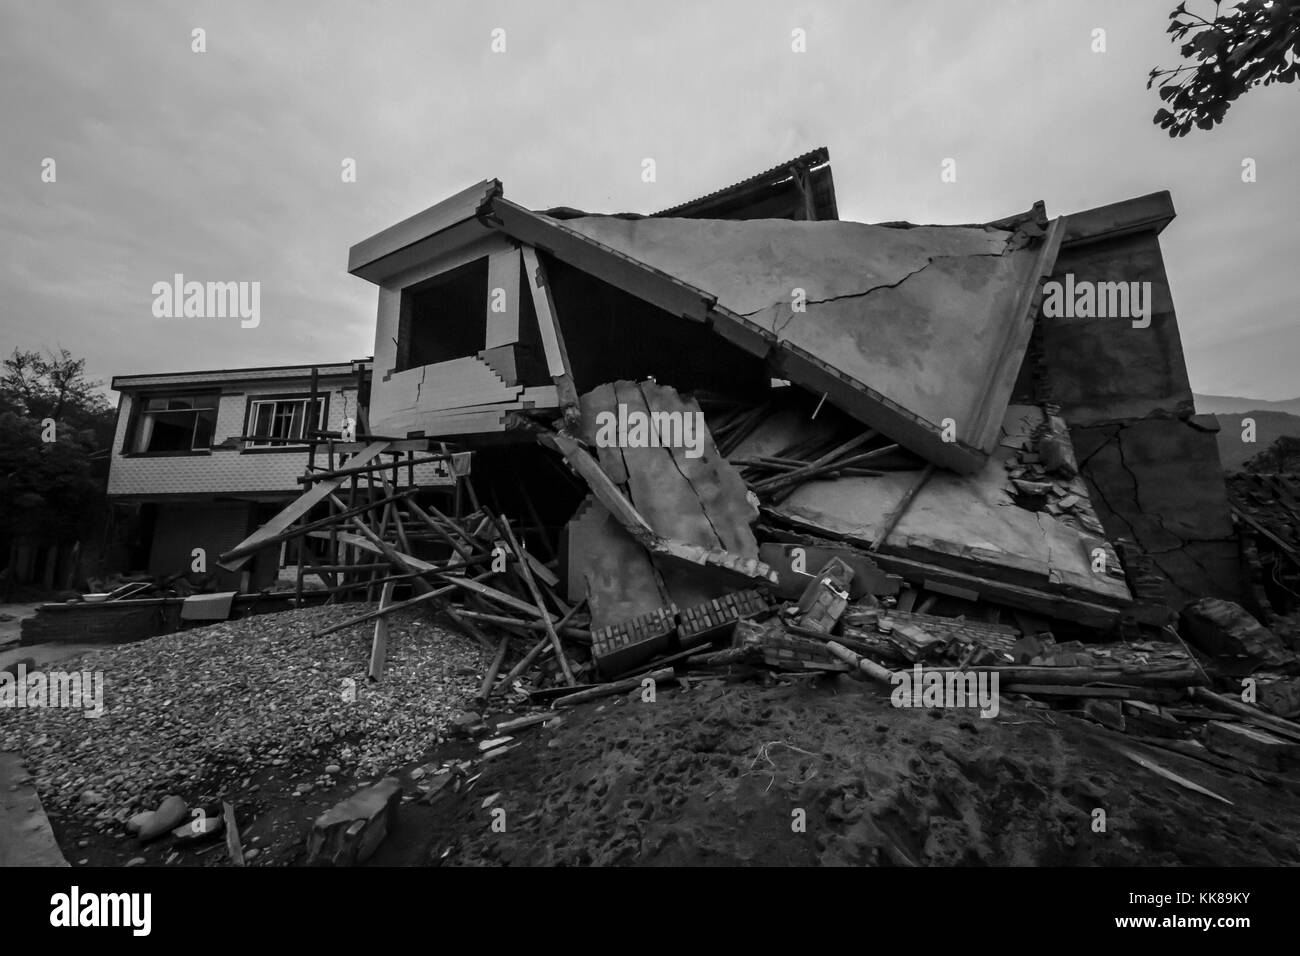 Damage to a village house in Sichuan, China after the magnitude 6.6 Lushan China Earthquake. Image courtesy USGS, - Stock Image